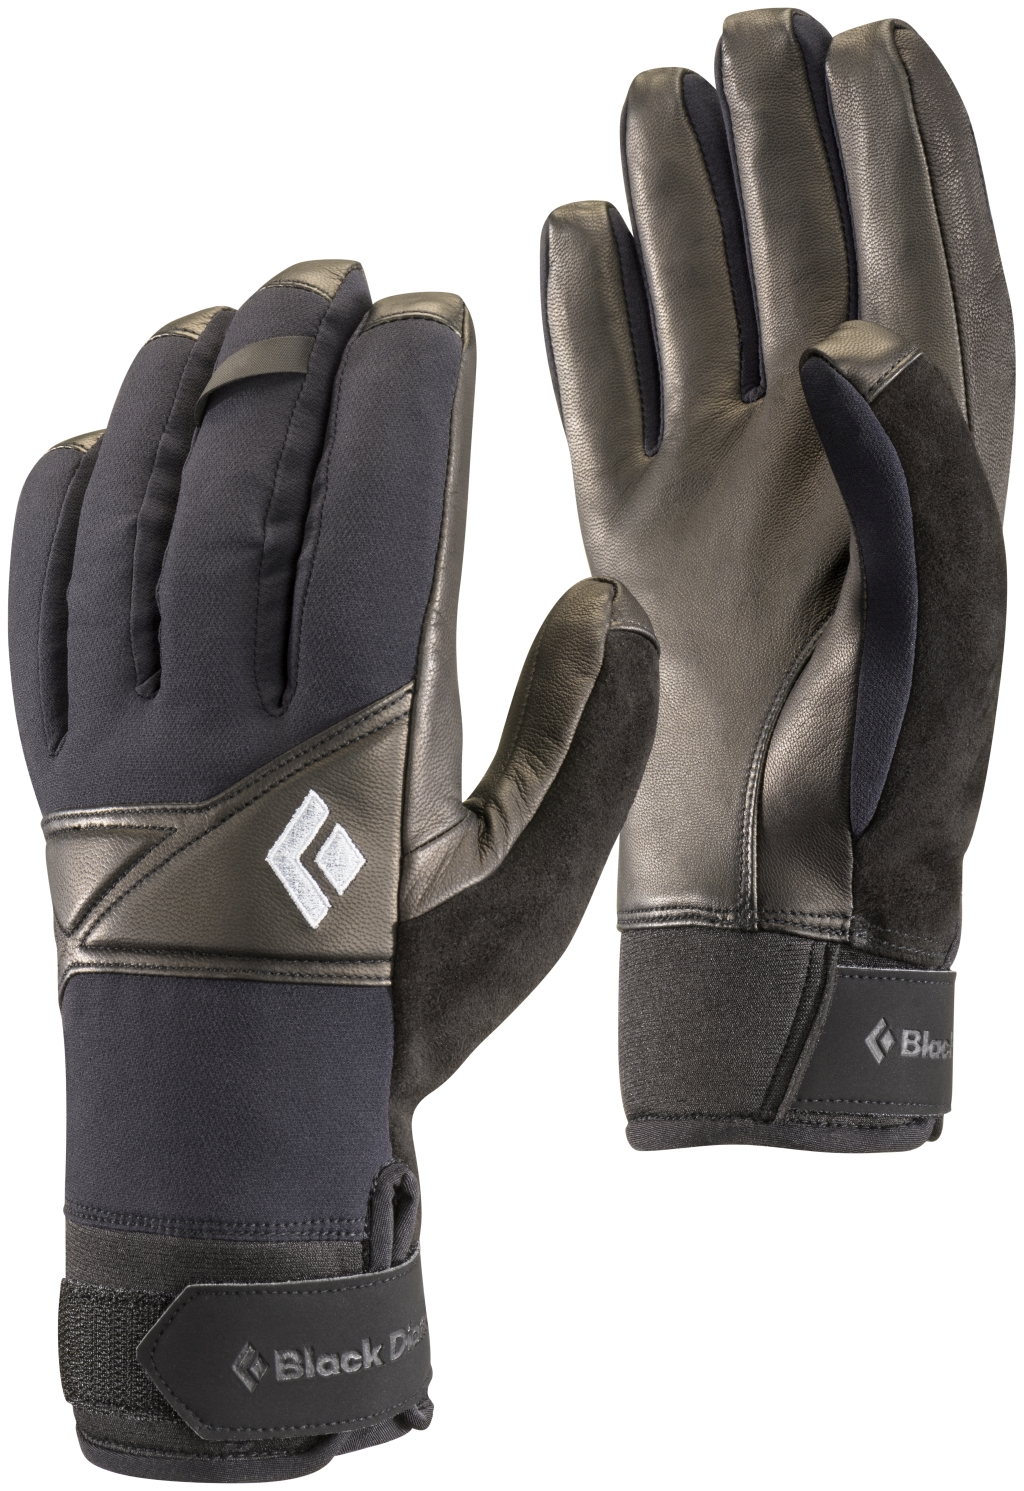 Black Diamond Terminator Gloves Black-30